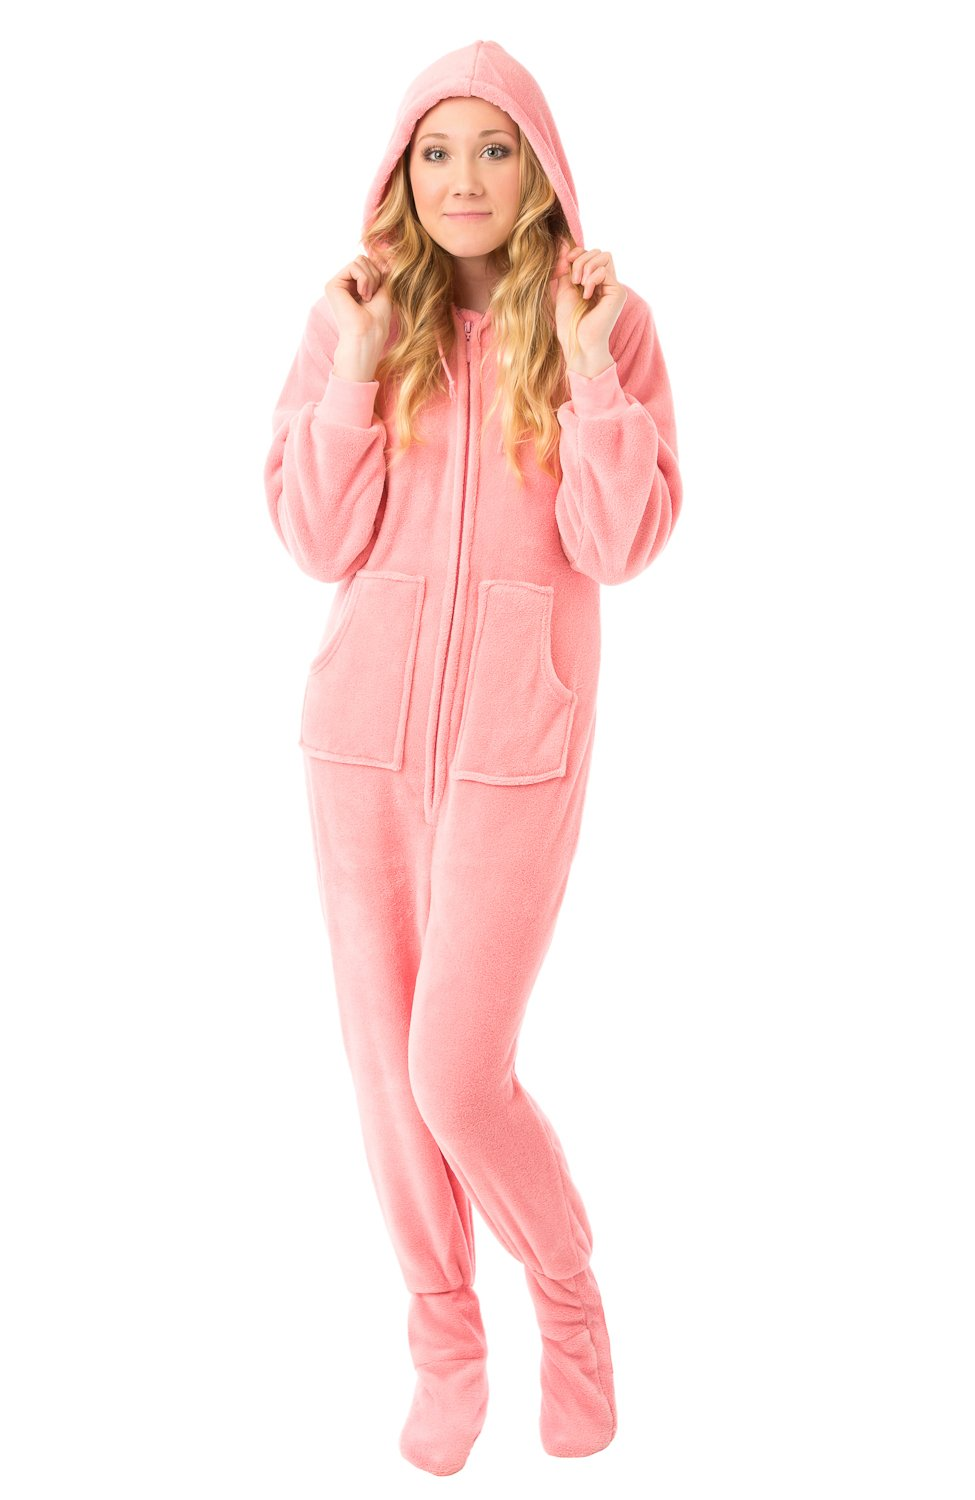 Footed pajamas for adults with drop seat